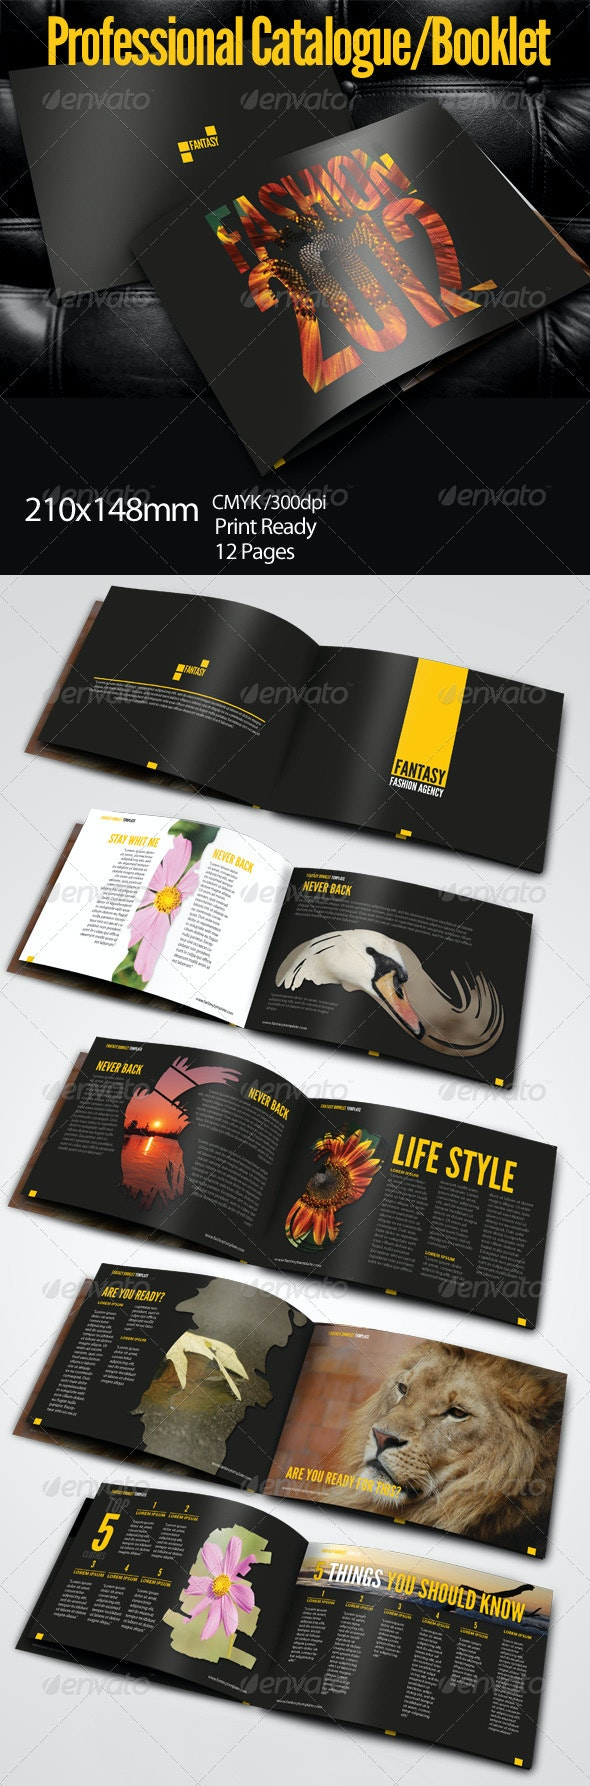 Fantasy Booklet Template - Corporate Brochures